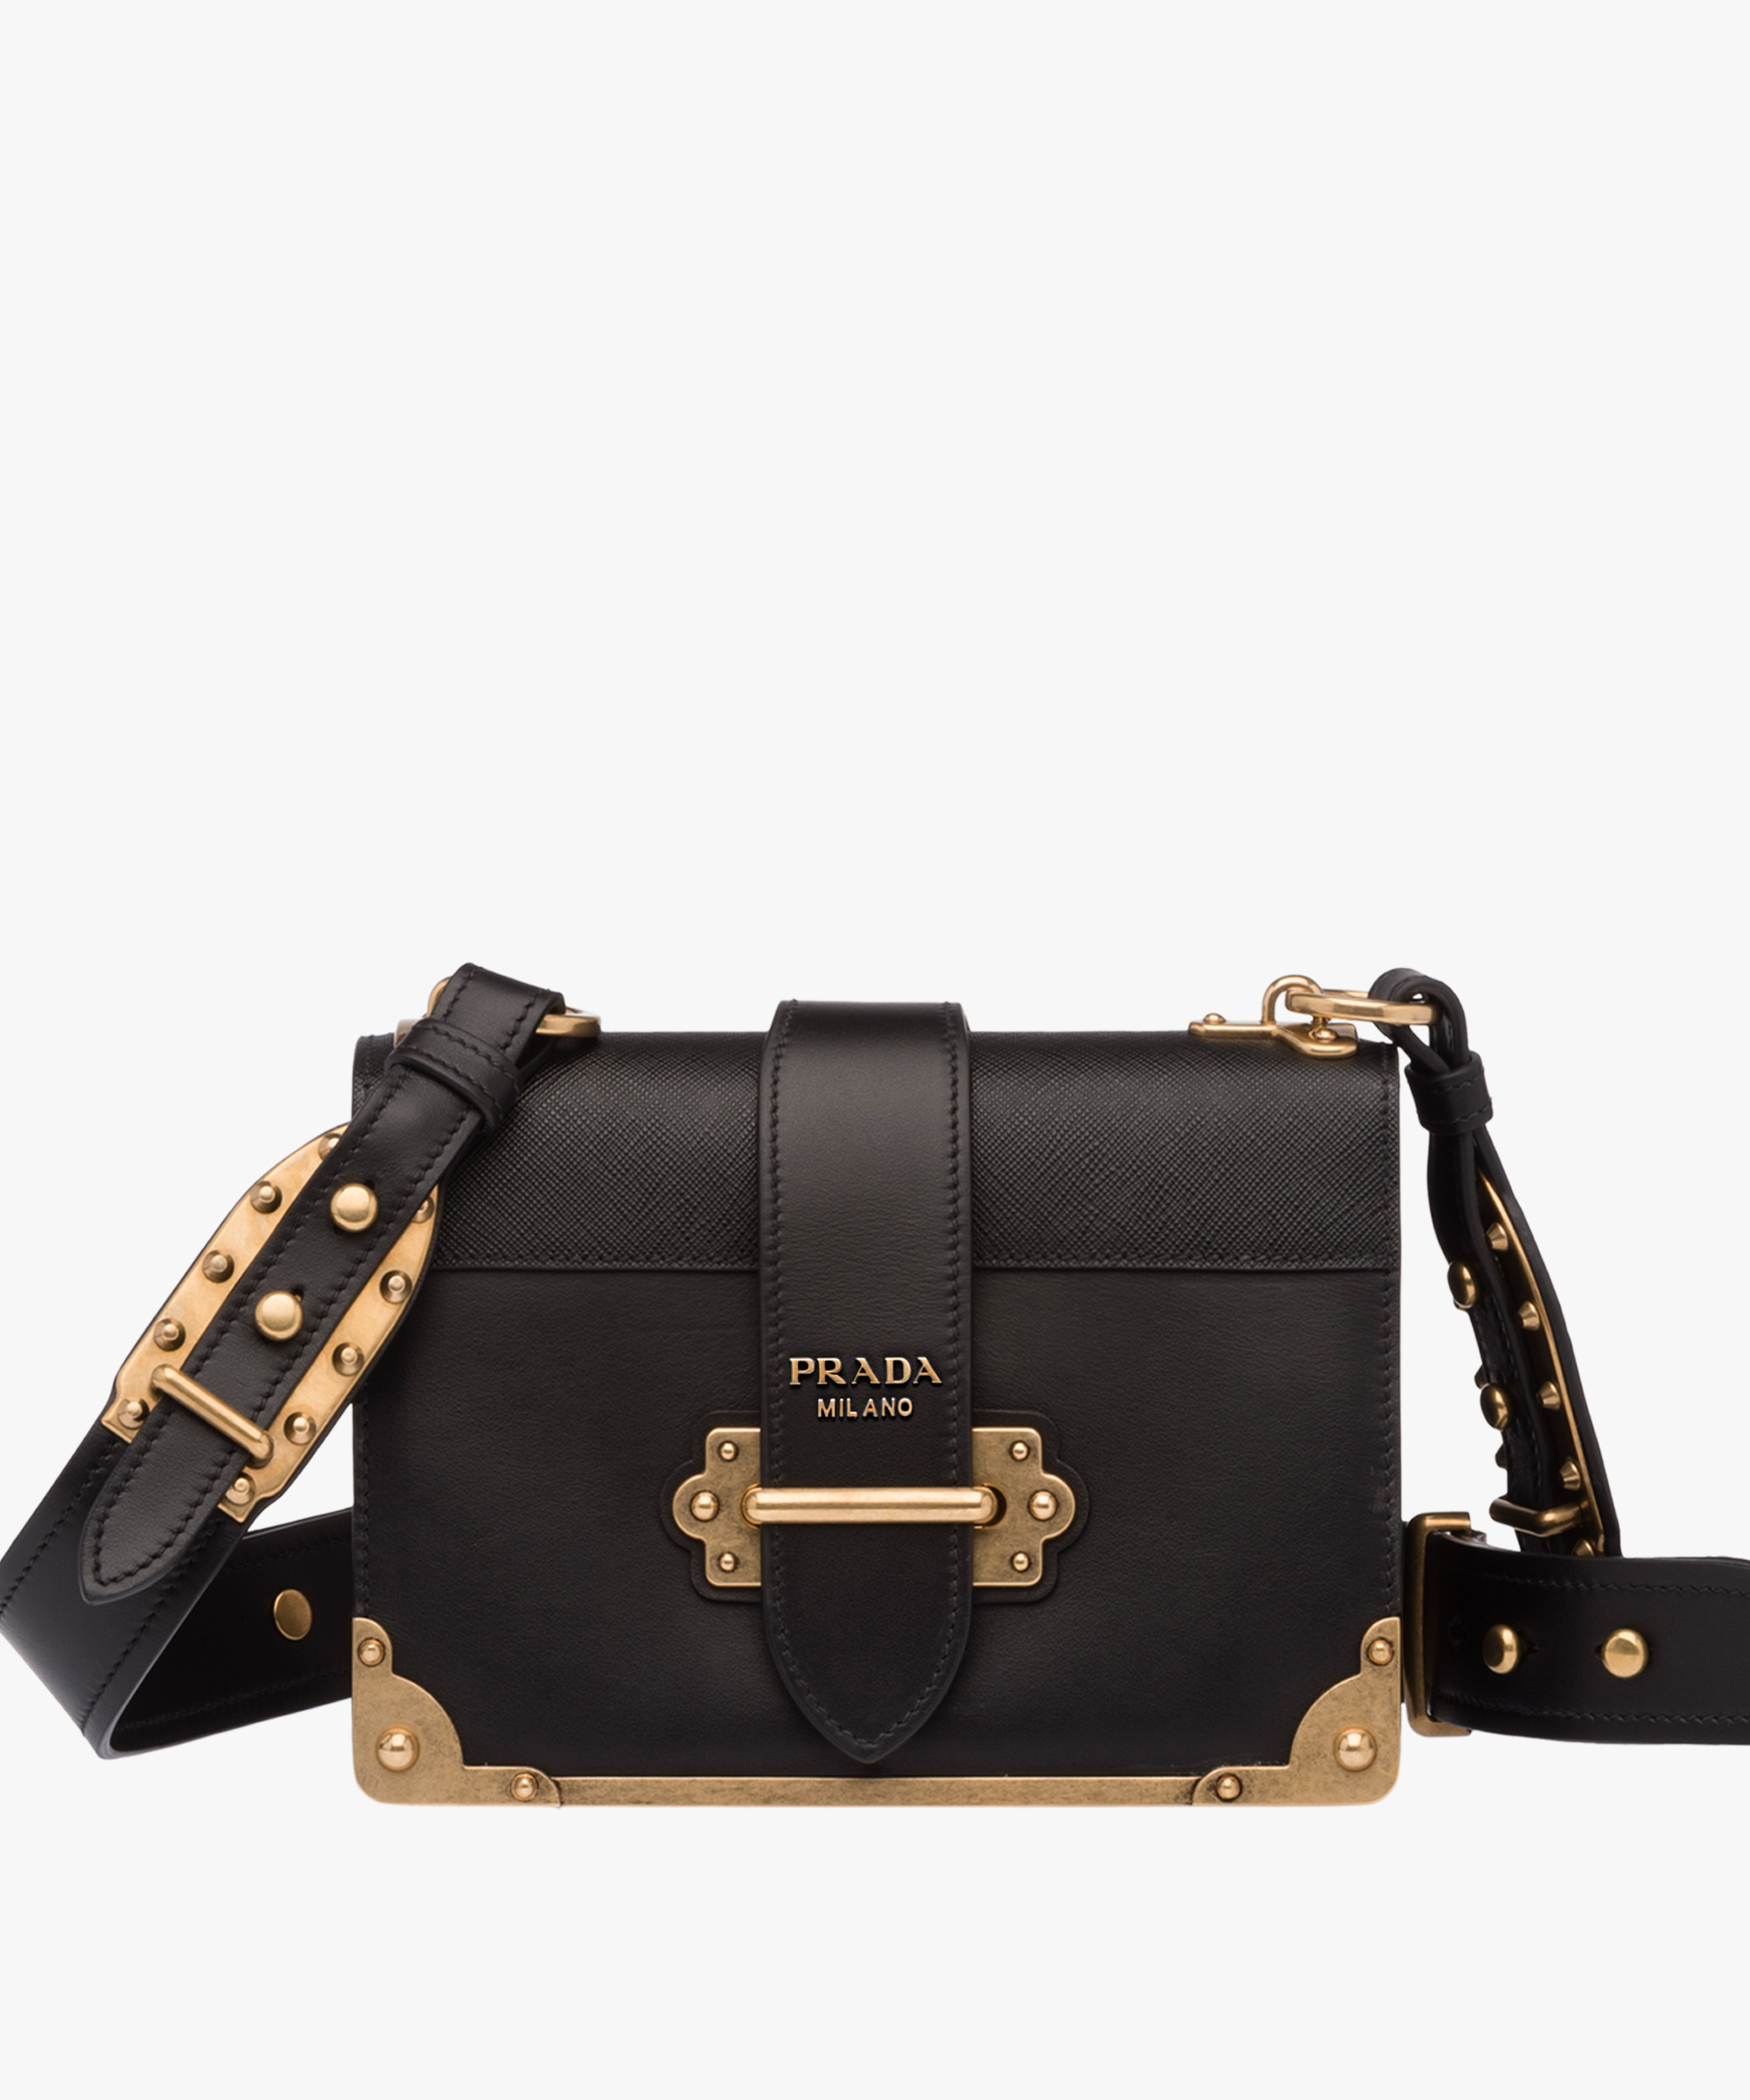 Prada Cahier Astrology